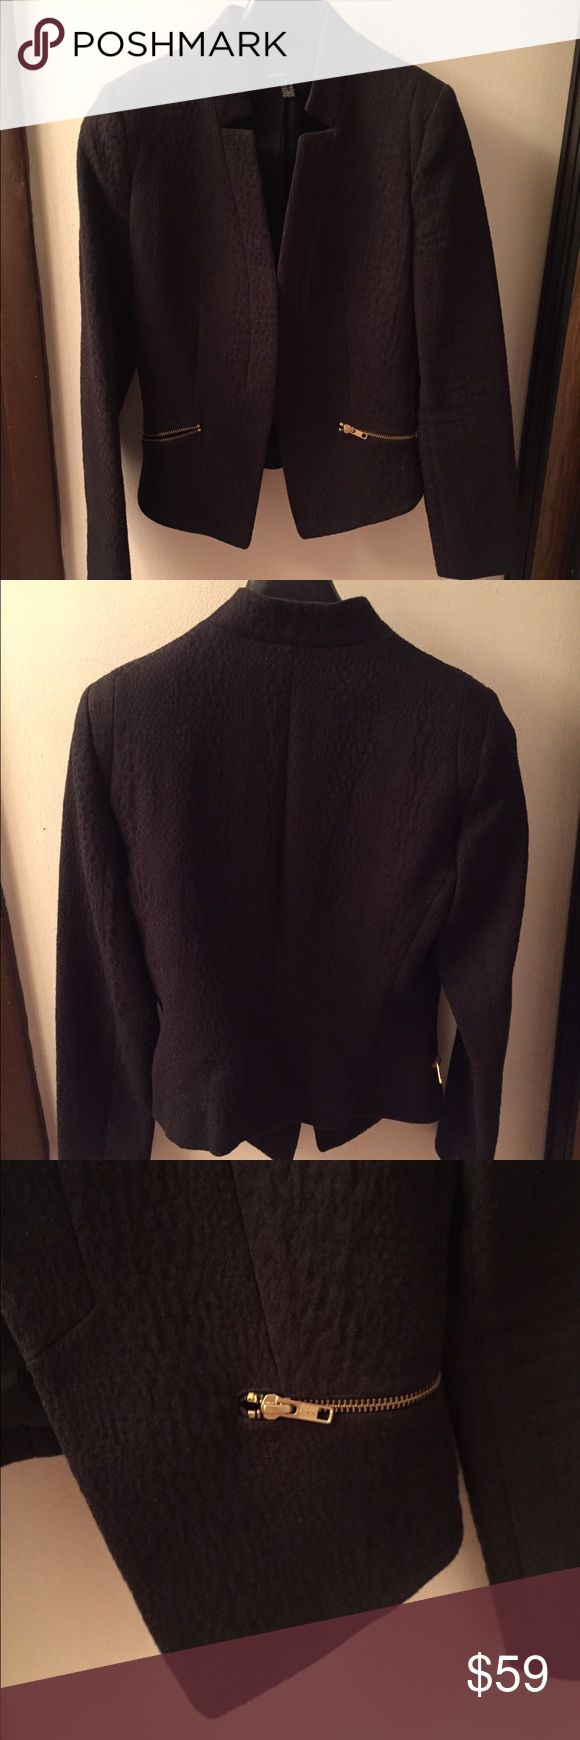 Mango Suit Perfect condition, I have only worn it once for interview. Mango Jackets & Coats